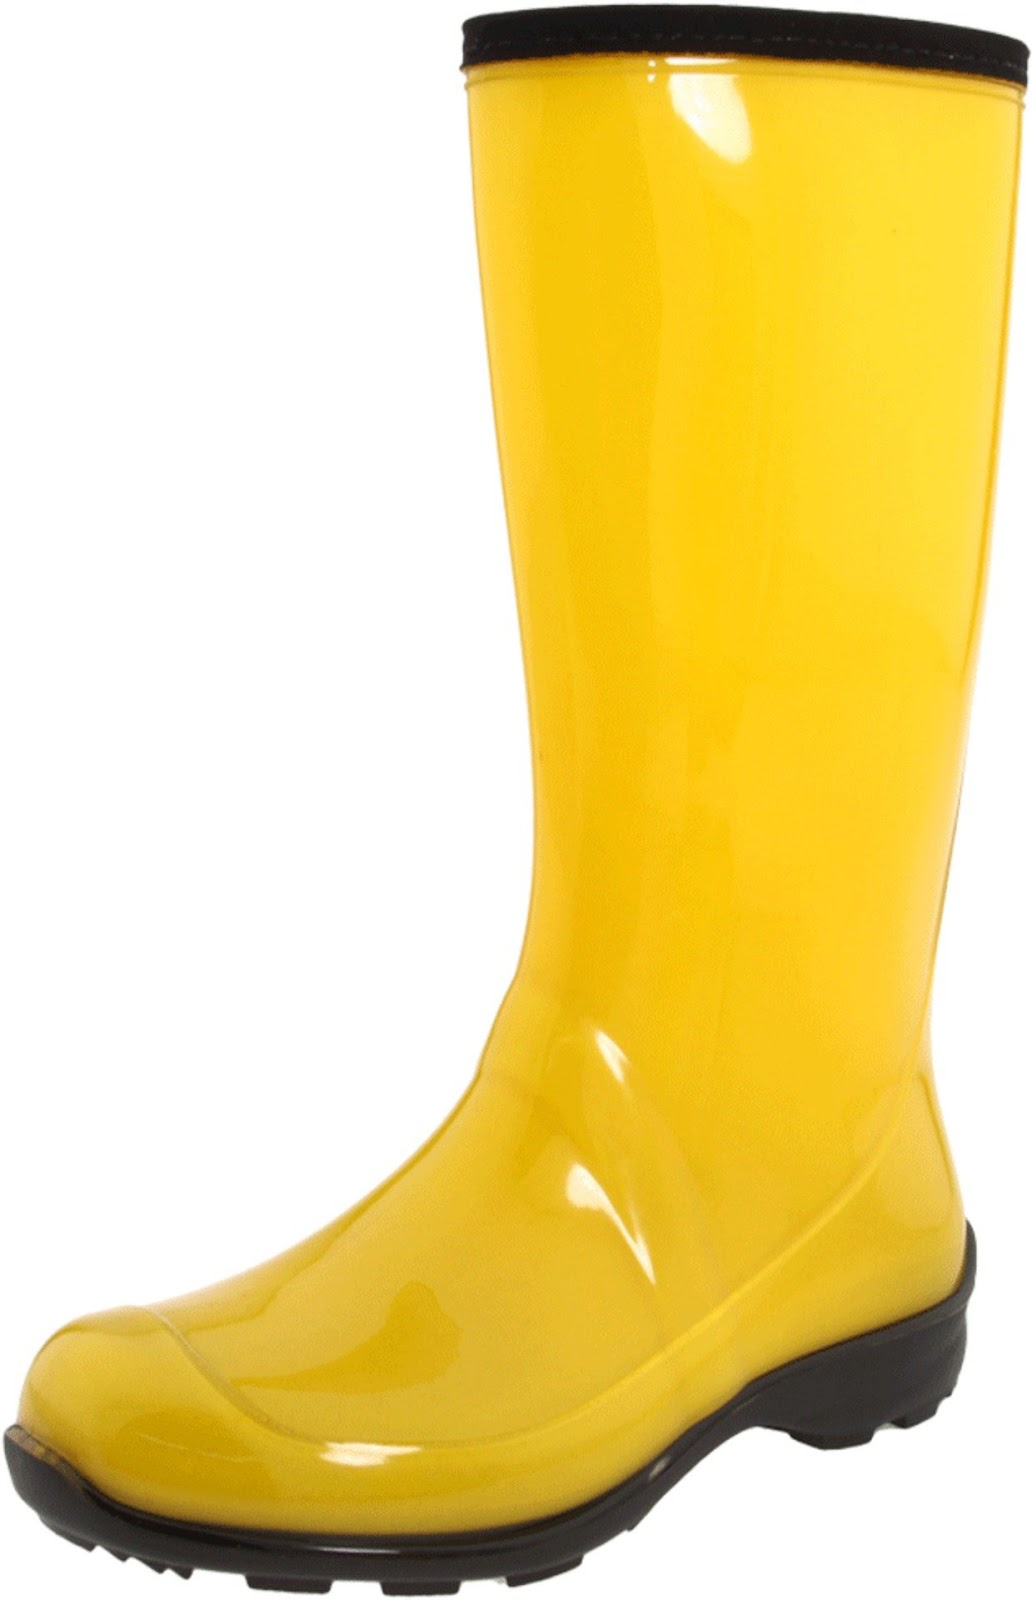 Yellow Boots Clipart Clipground